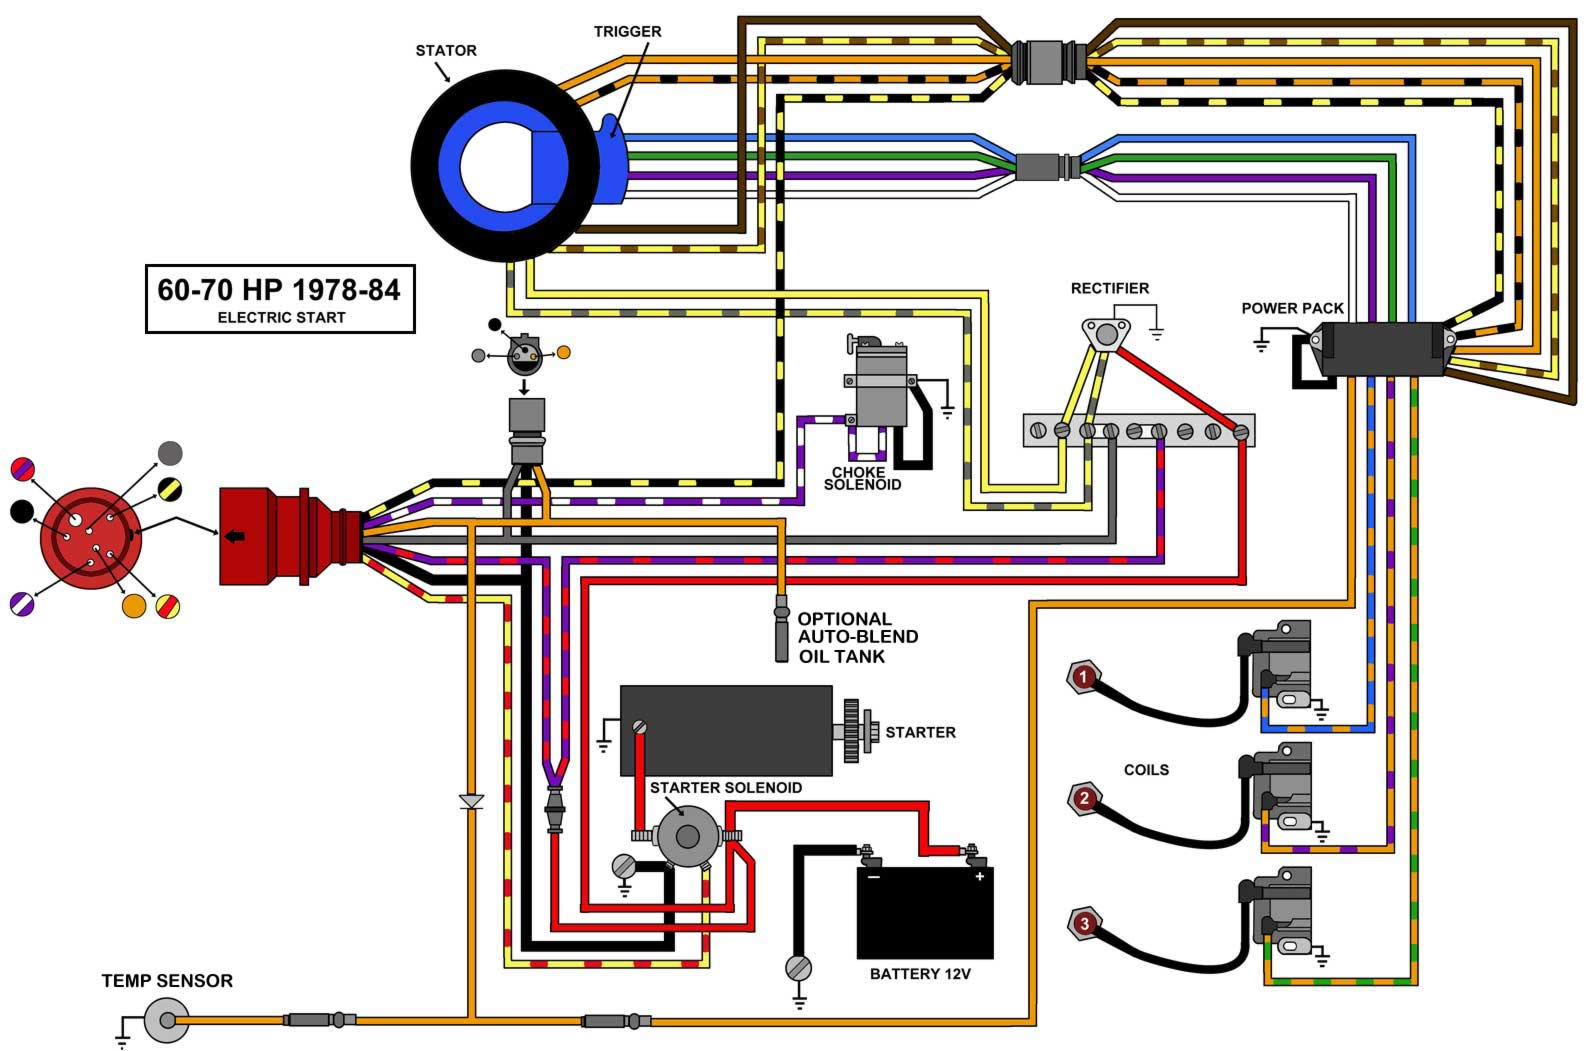 Wiring tach from Johnson controls Page 1 iboats Boating Forums – Johnson Ignition Switch Wiring Diagram